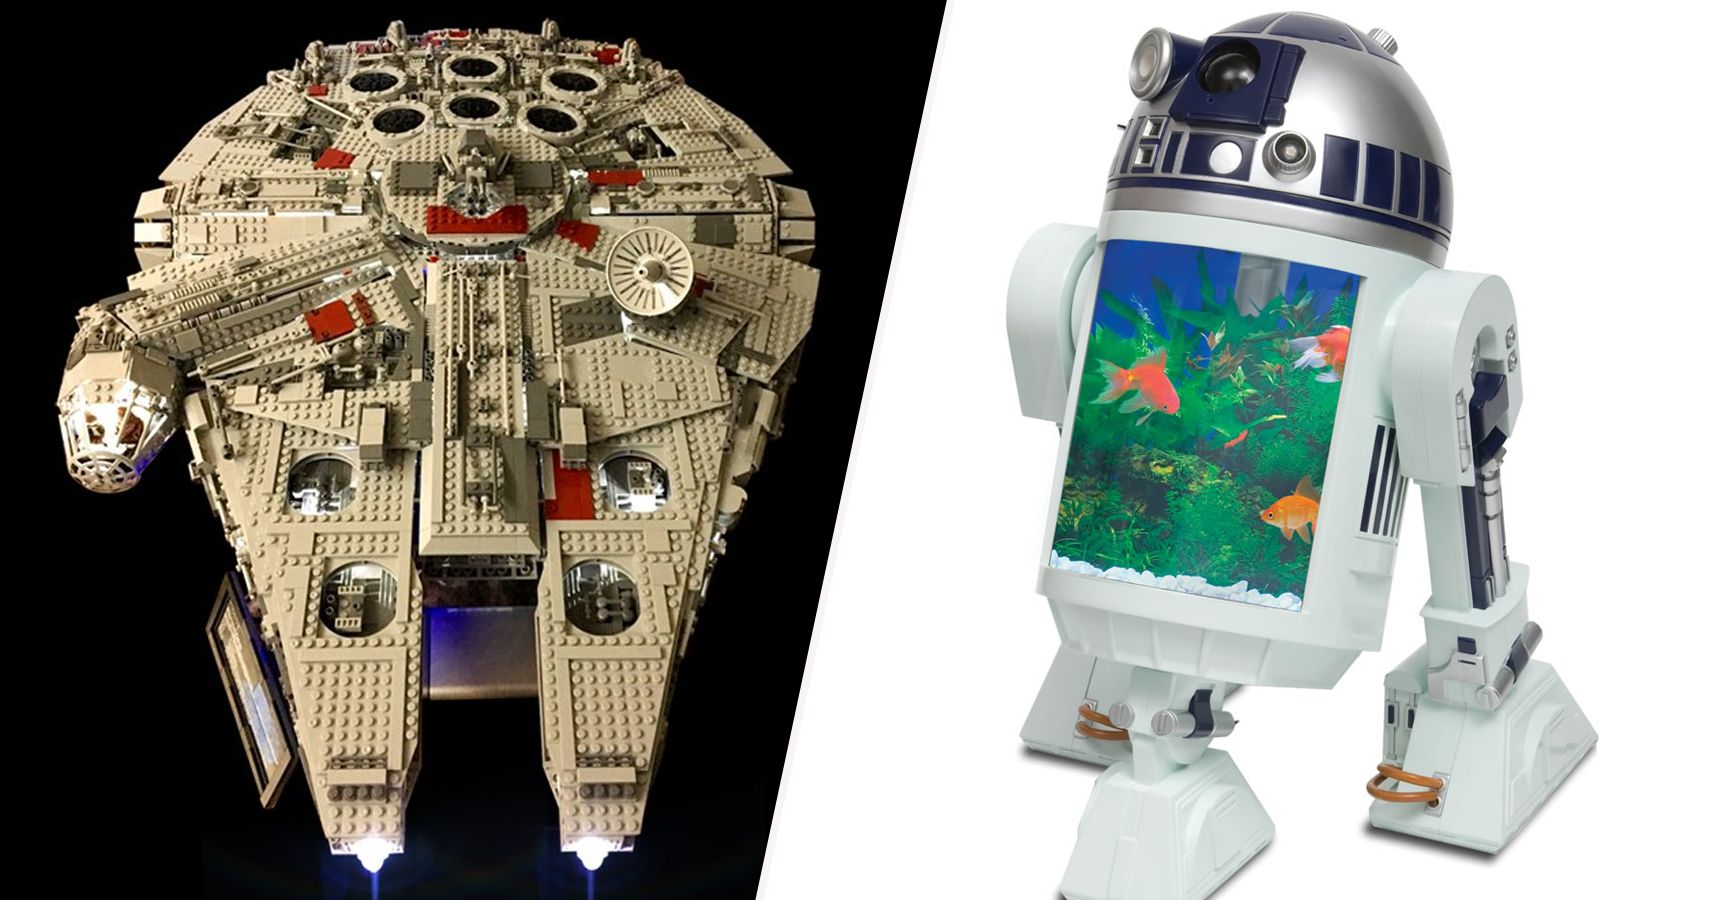 Panavision Camera Star Wars : Star wars collectibles that are worth a fortune and that